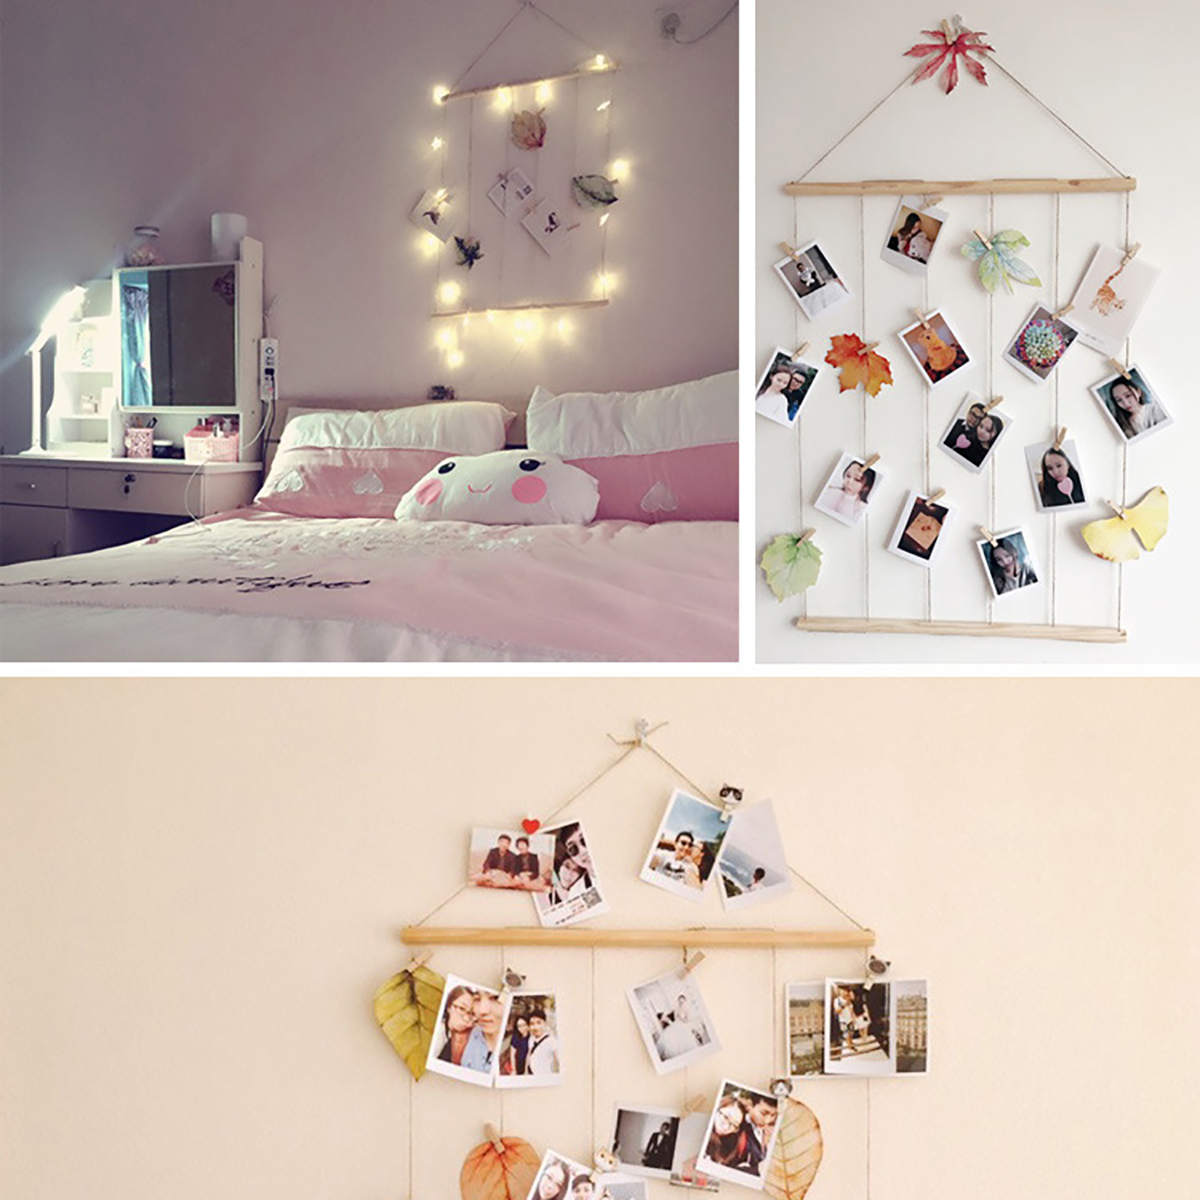 Details about DIY Hanging Display Frame Wall Art Photo Picture Album Rope  Clip Home Decor Wood